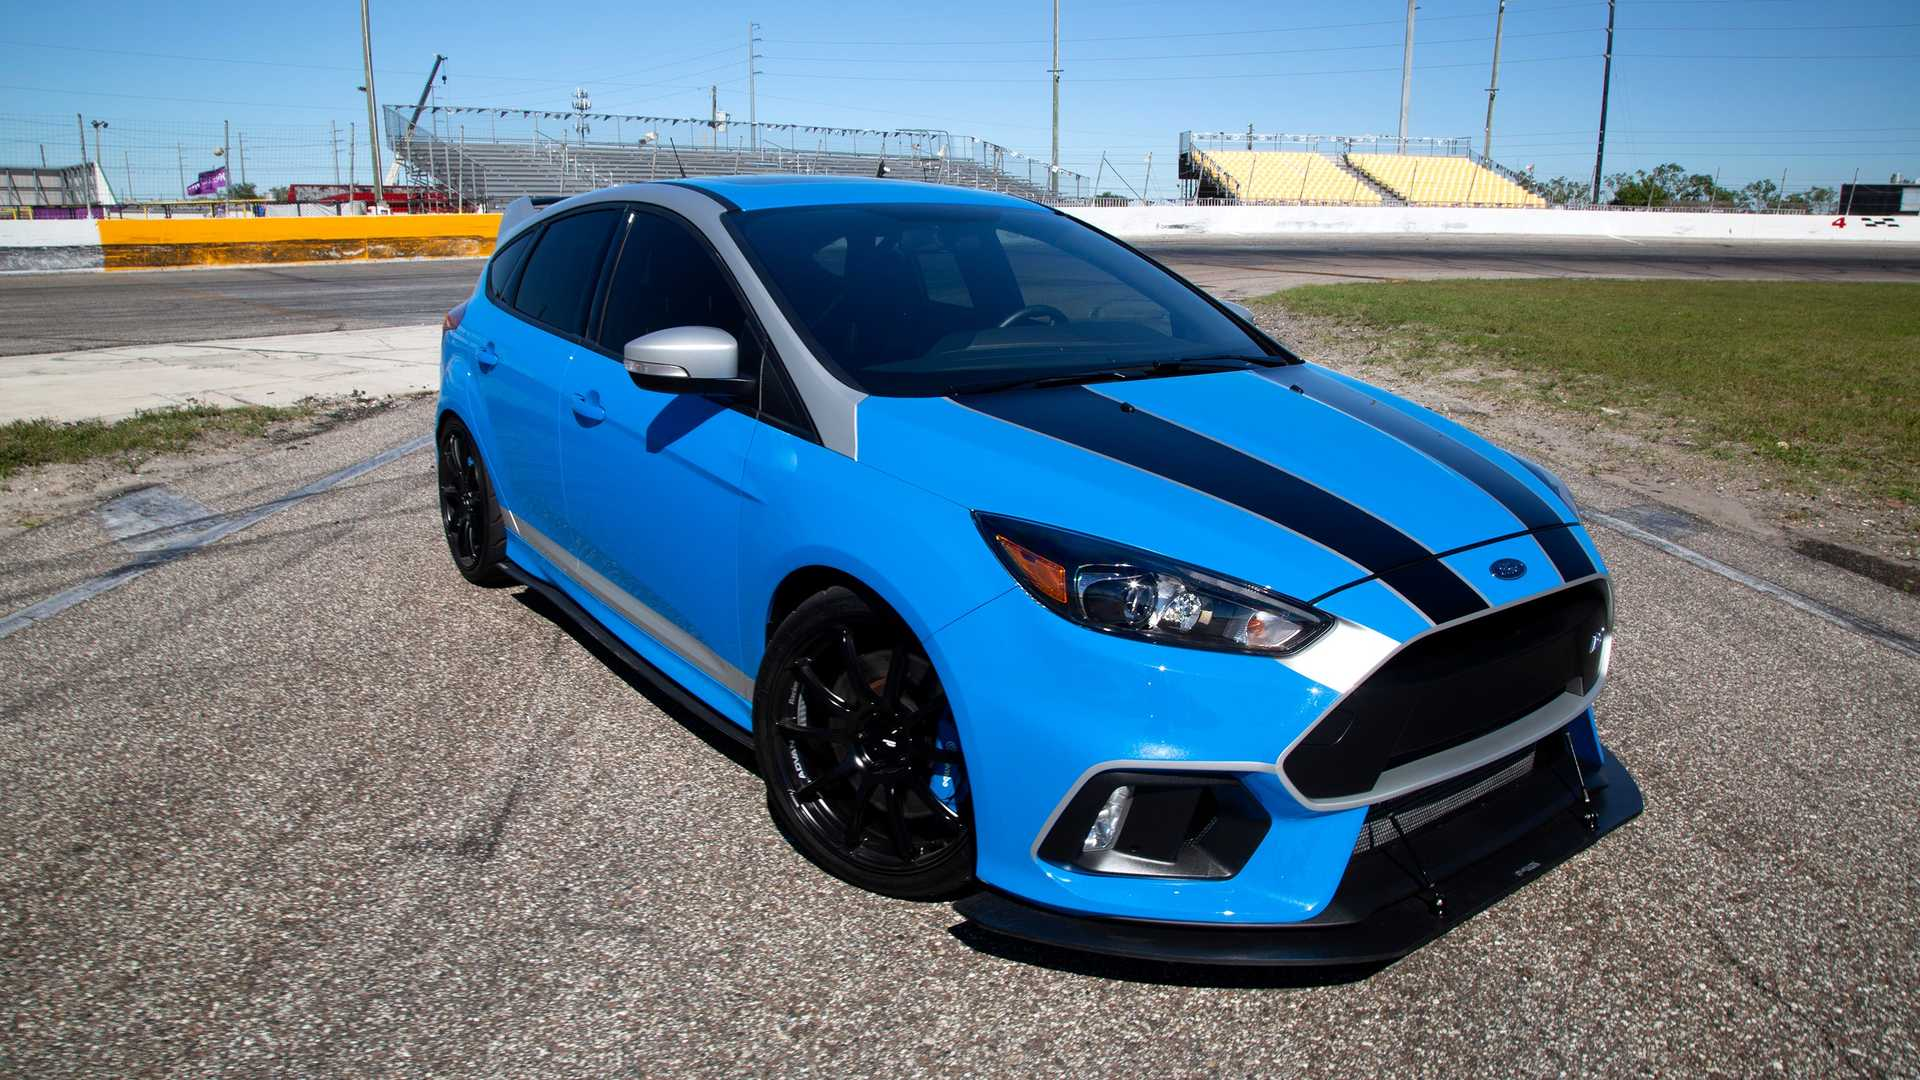 Focus Rs Hp >> Motor1 Com Exclusive Get Extra Chances To Win This 450 Hp Ford Focus Rs